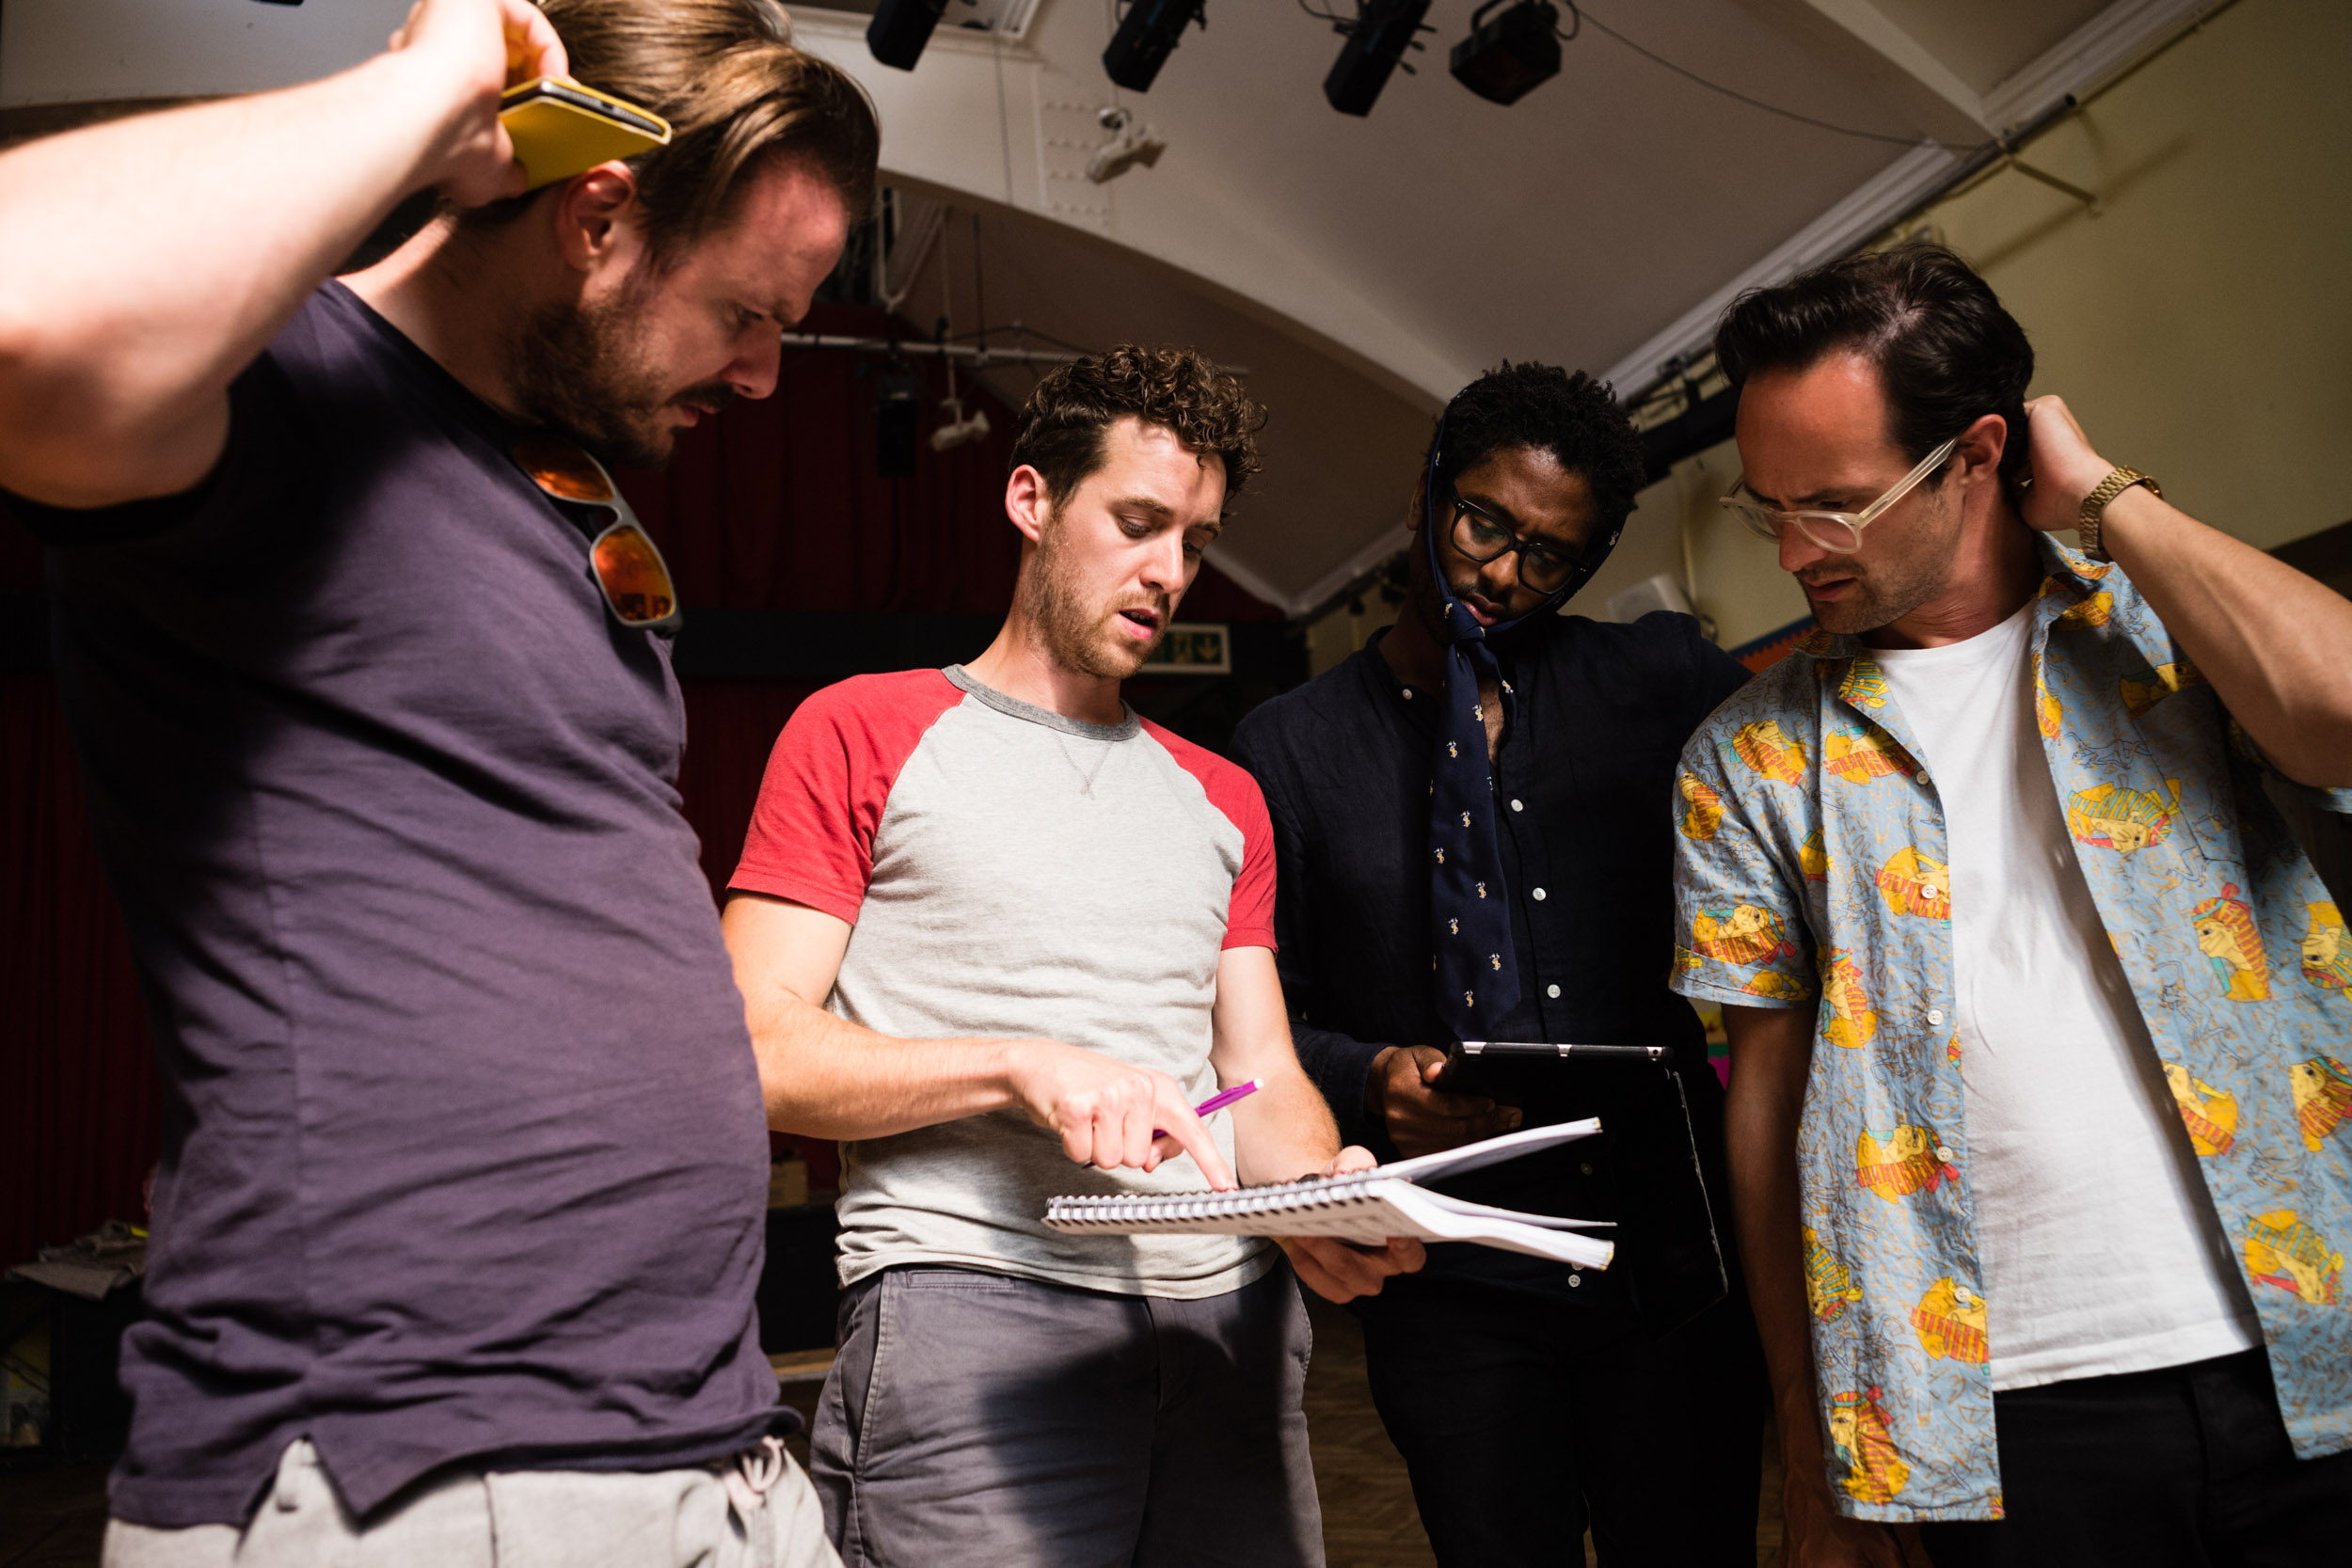 From Left: Tom Stoddart (Papageno), David Keefe (Musical Director), Peter Brathwaite (Papageno), Lawrence Olsworth-Peter (Tamino)